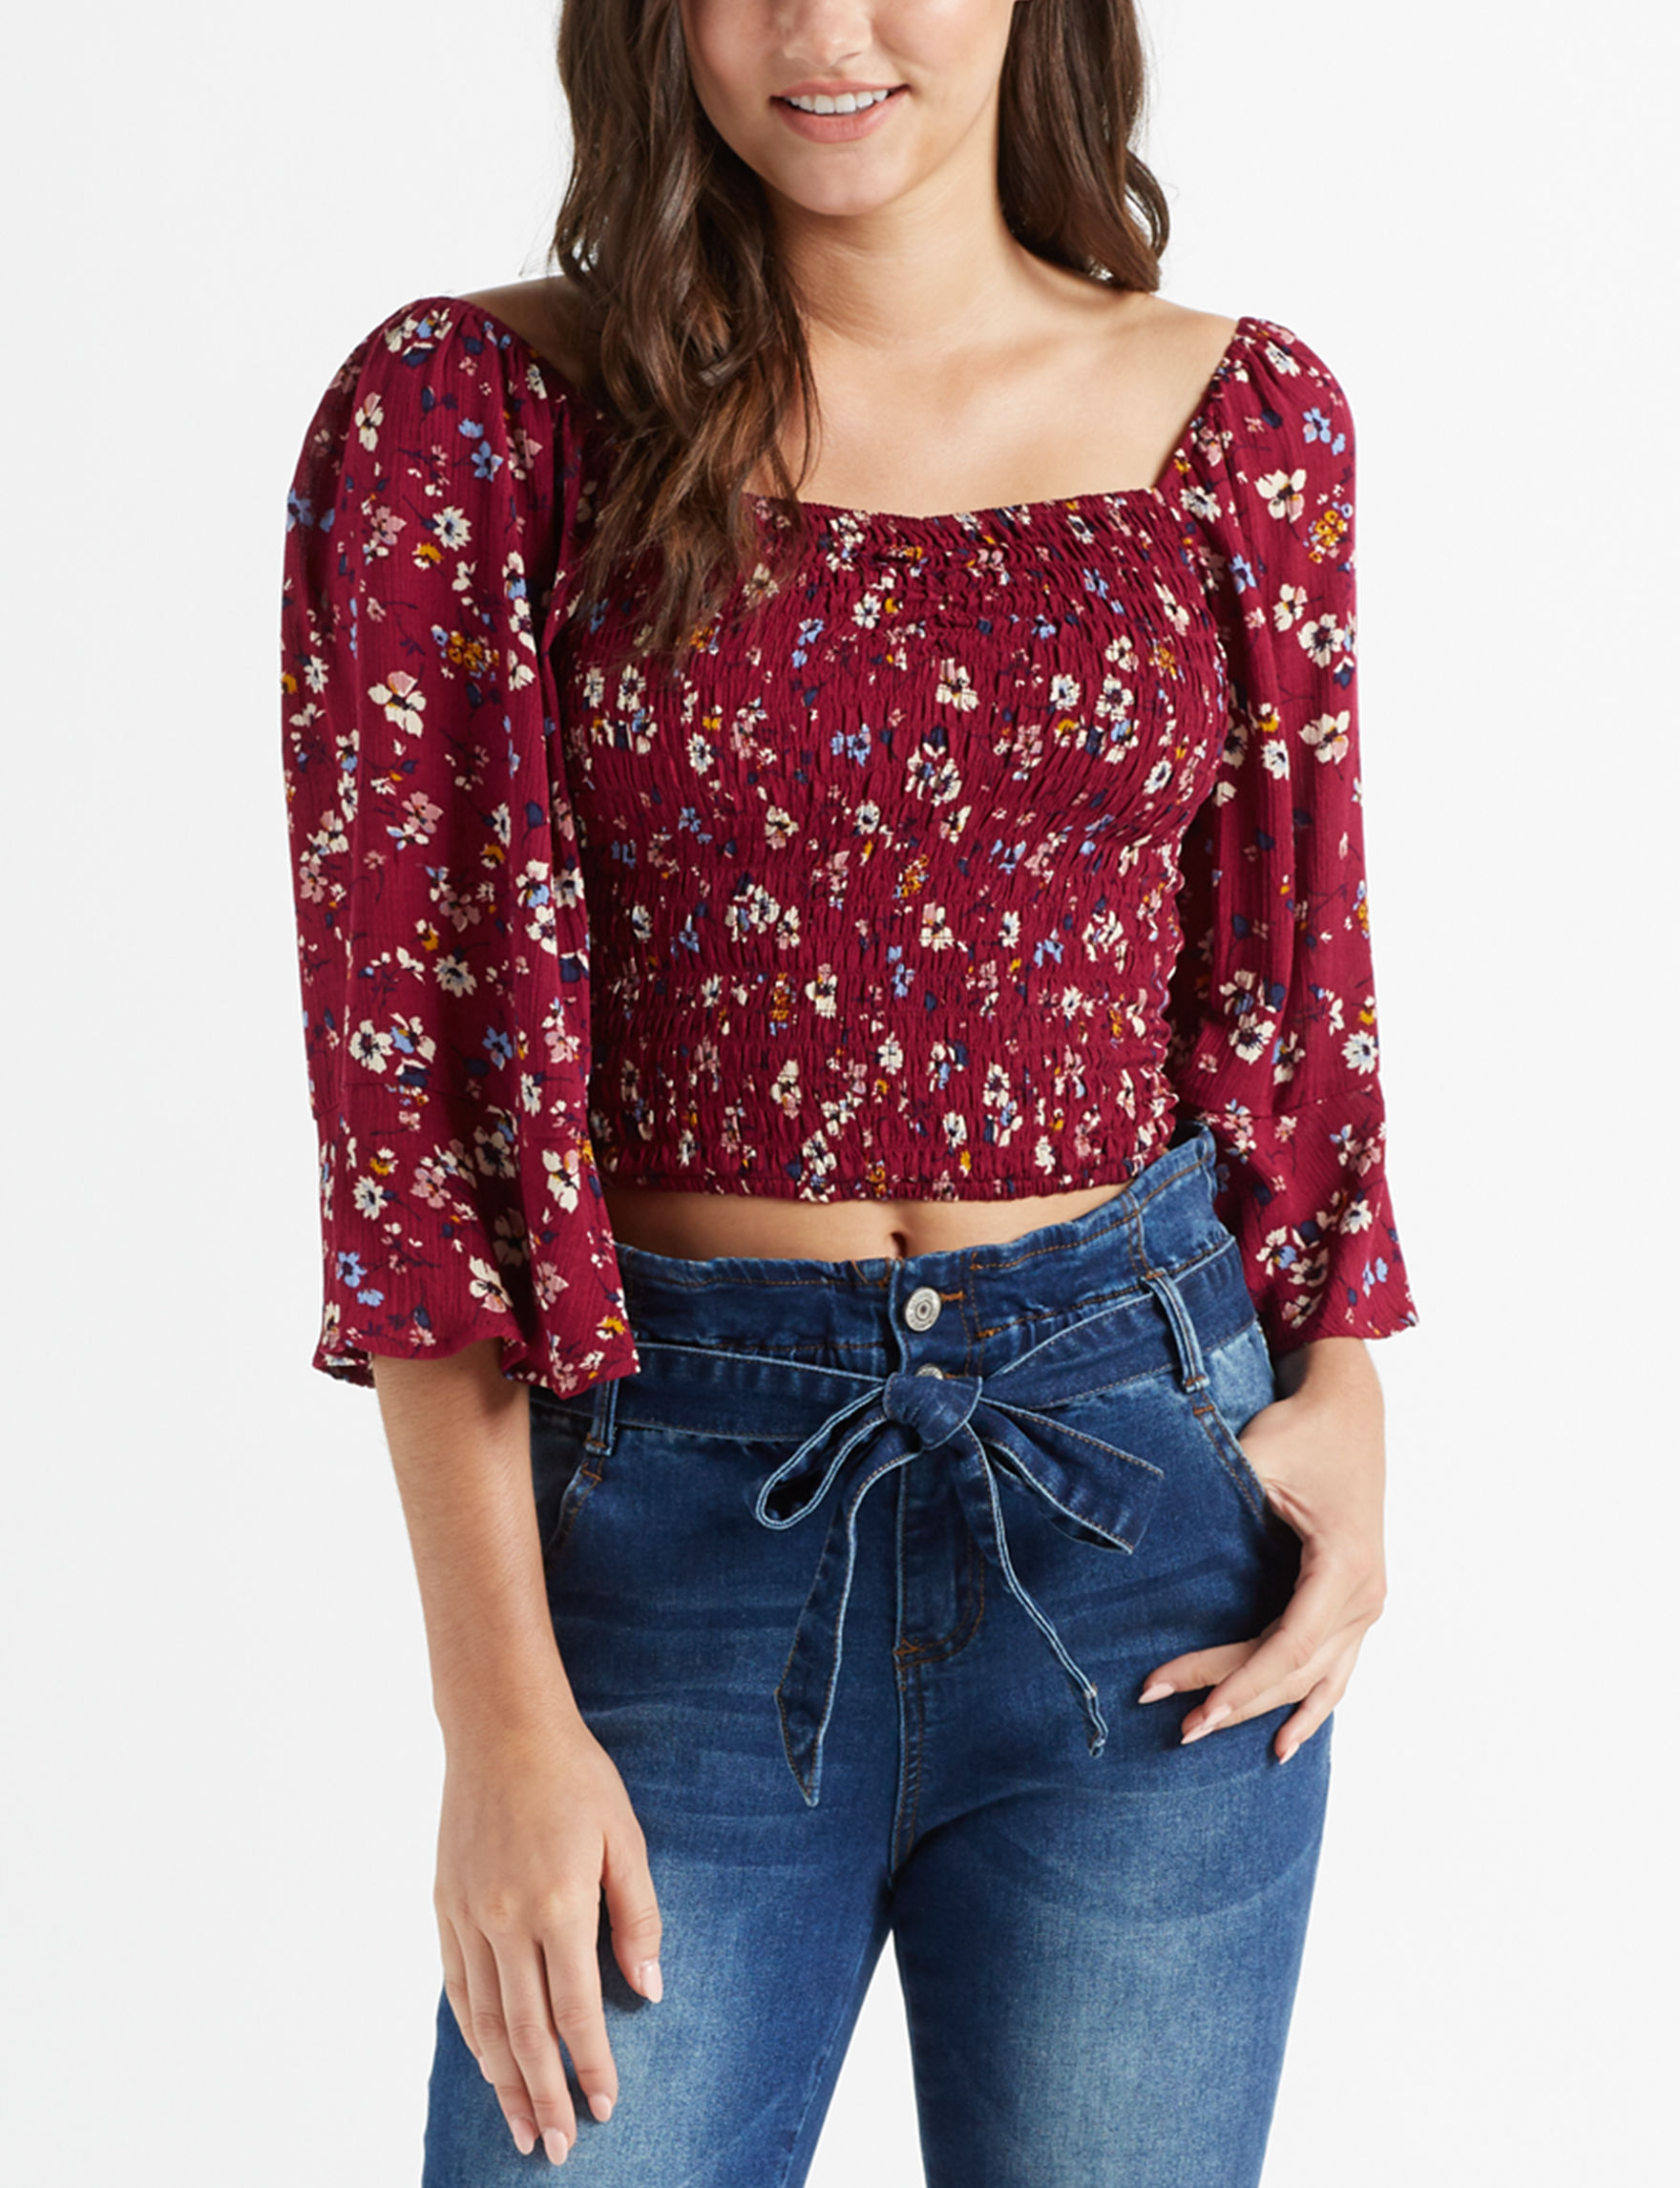 Liberty Love Wine Shirts & Blouses